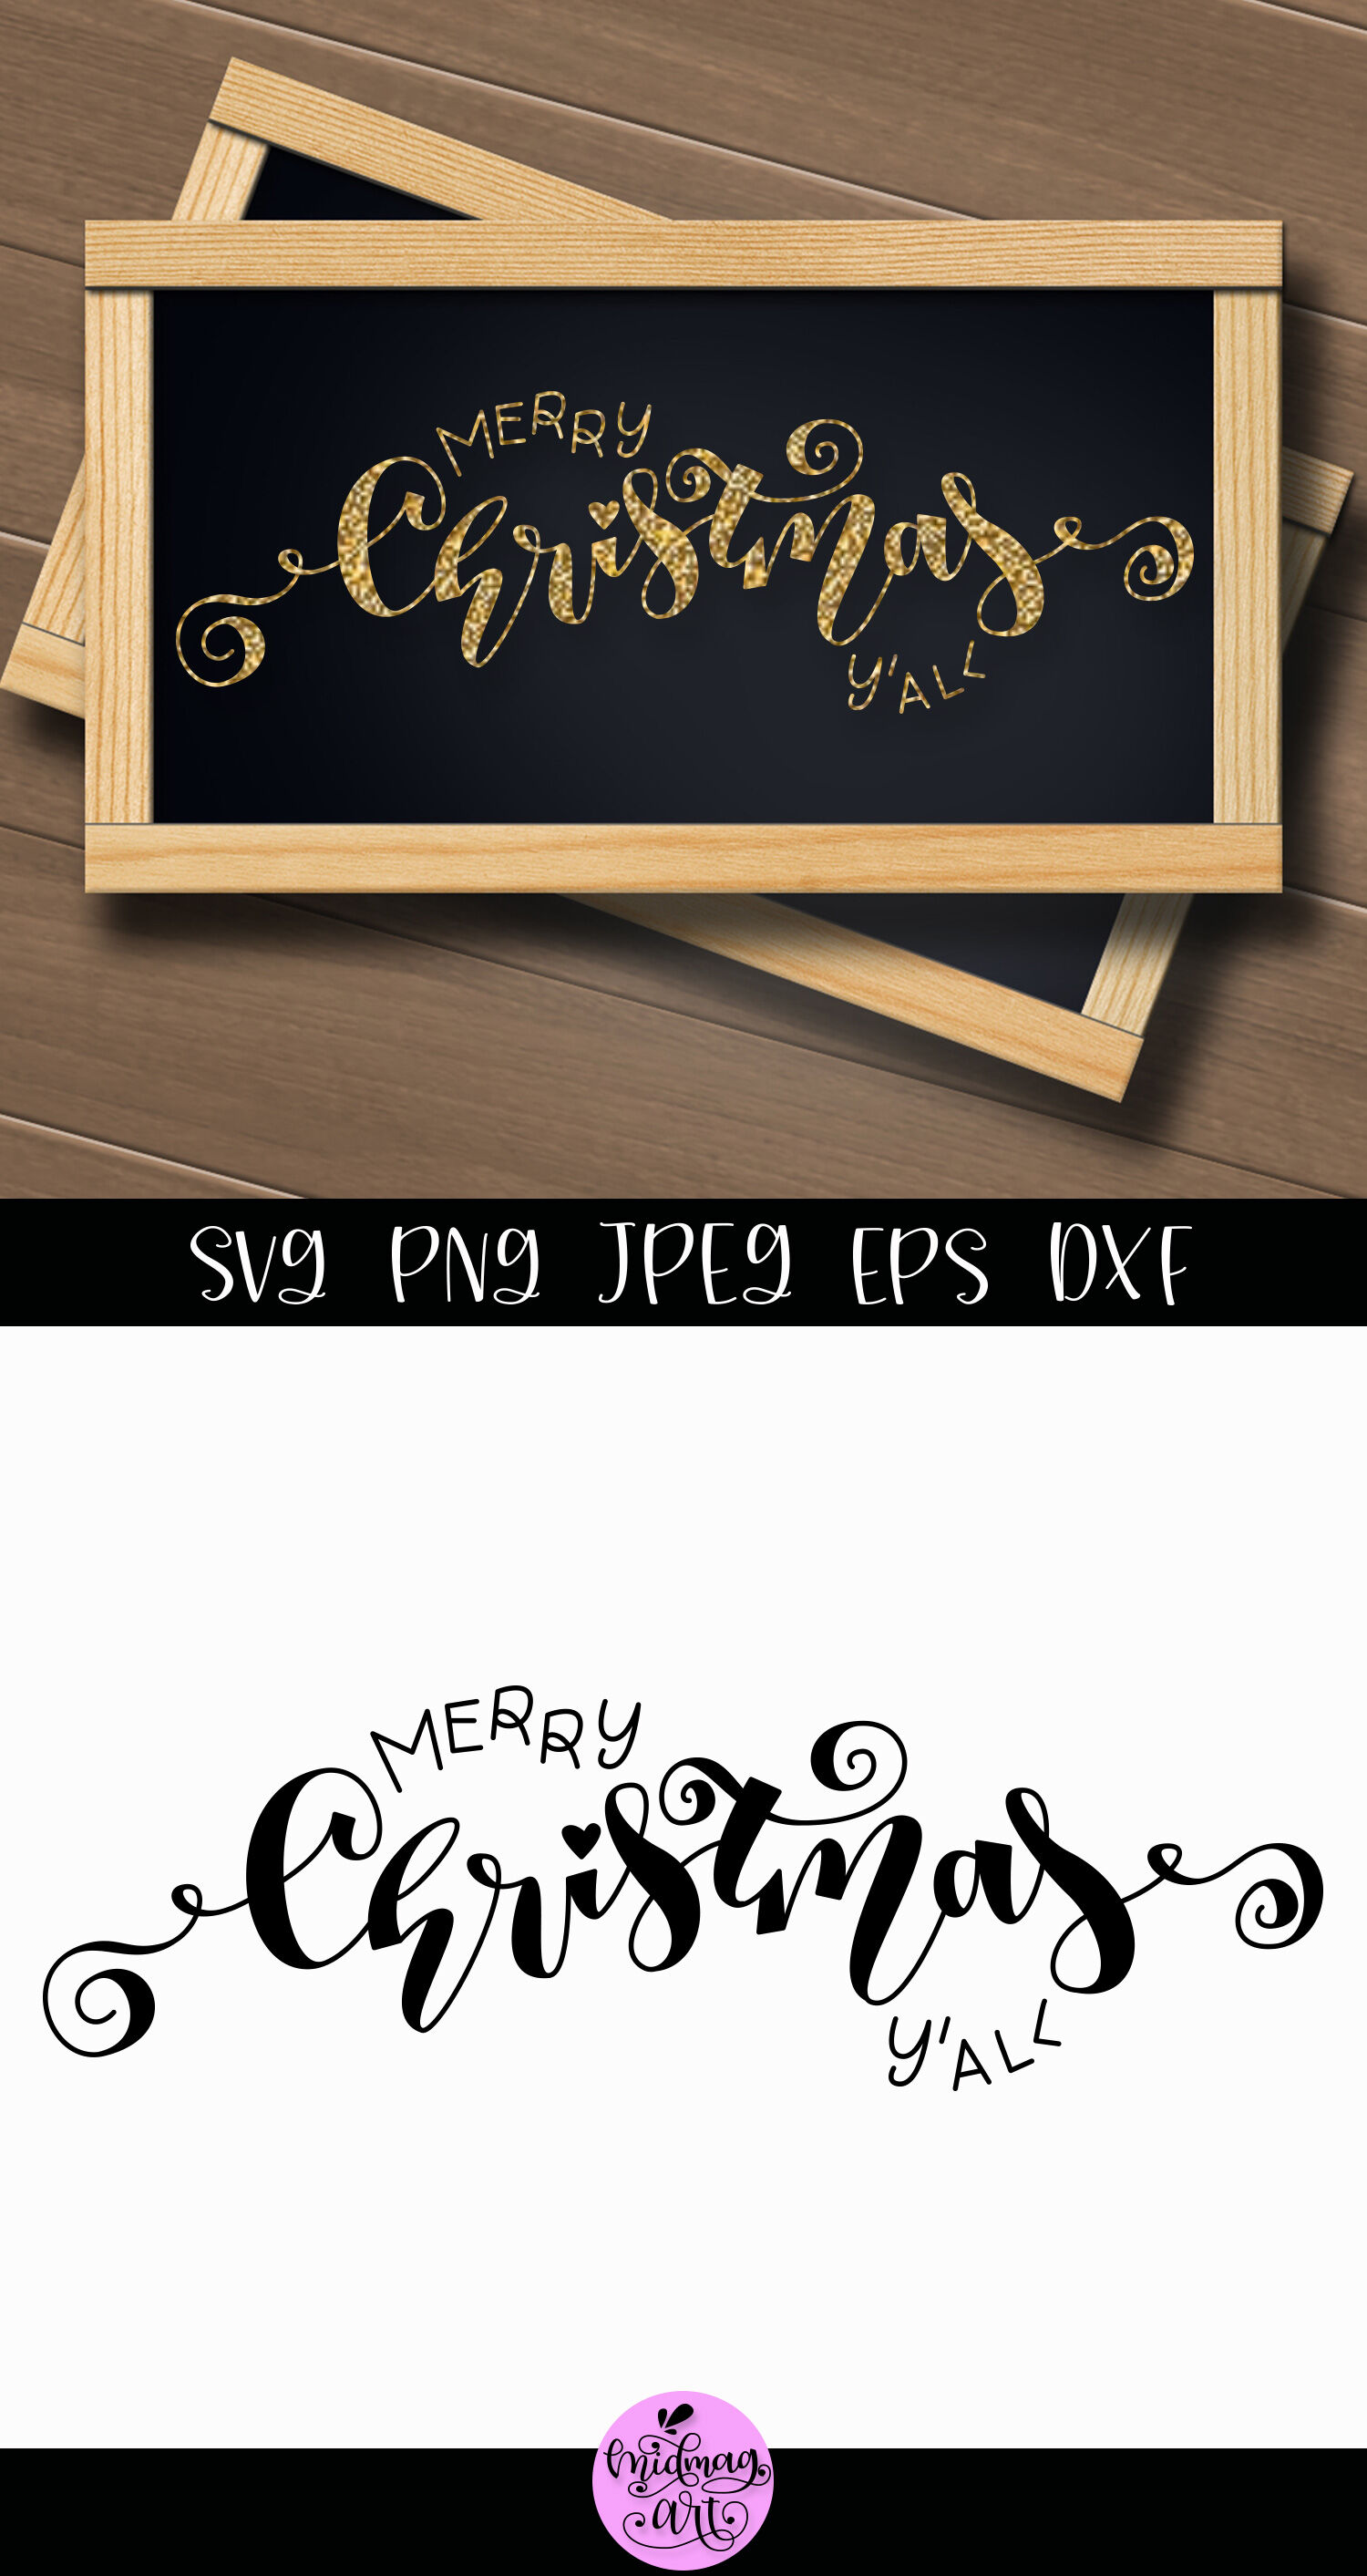 Merry Christmas Yall Sign Svg Christmas Sign Svg By Midmagart